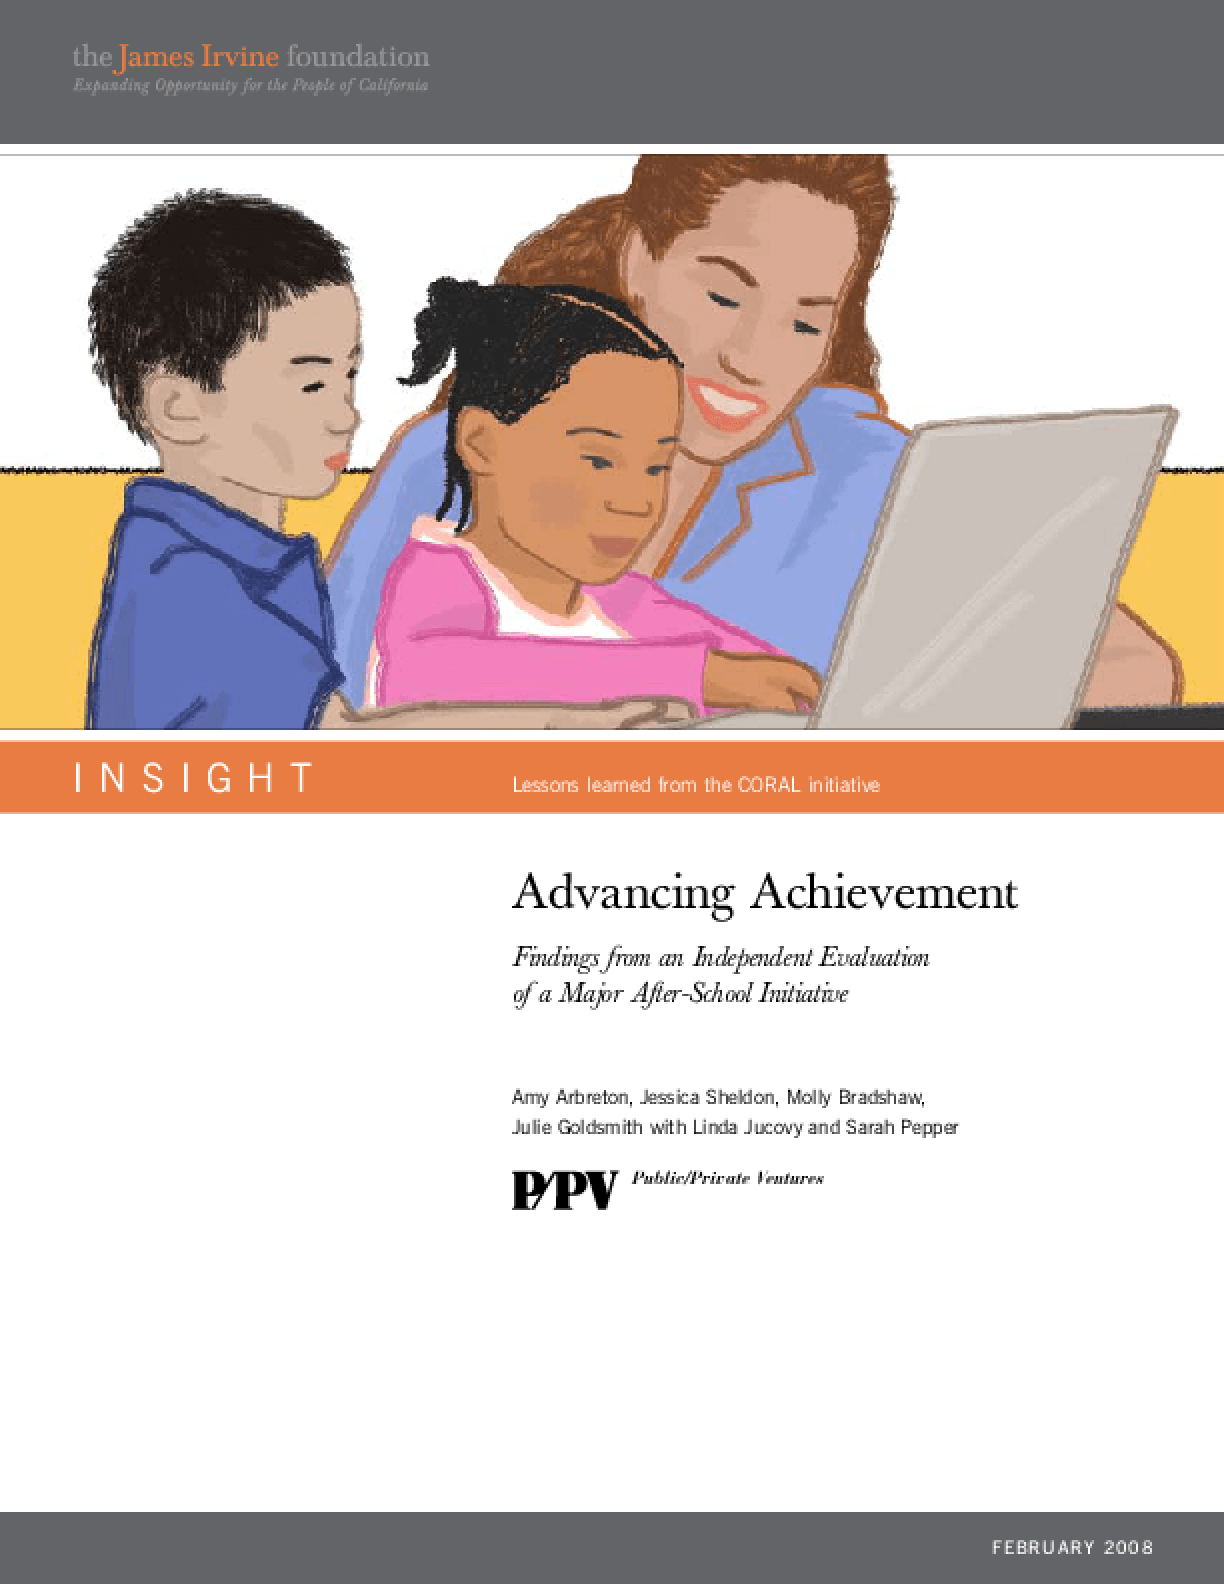 Advancing Achievement: Findings from an Independent Evaluation of a Major After-School Initiative